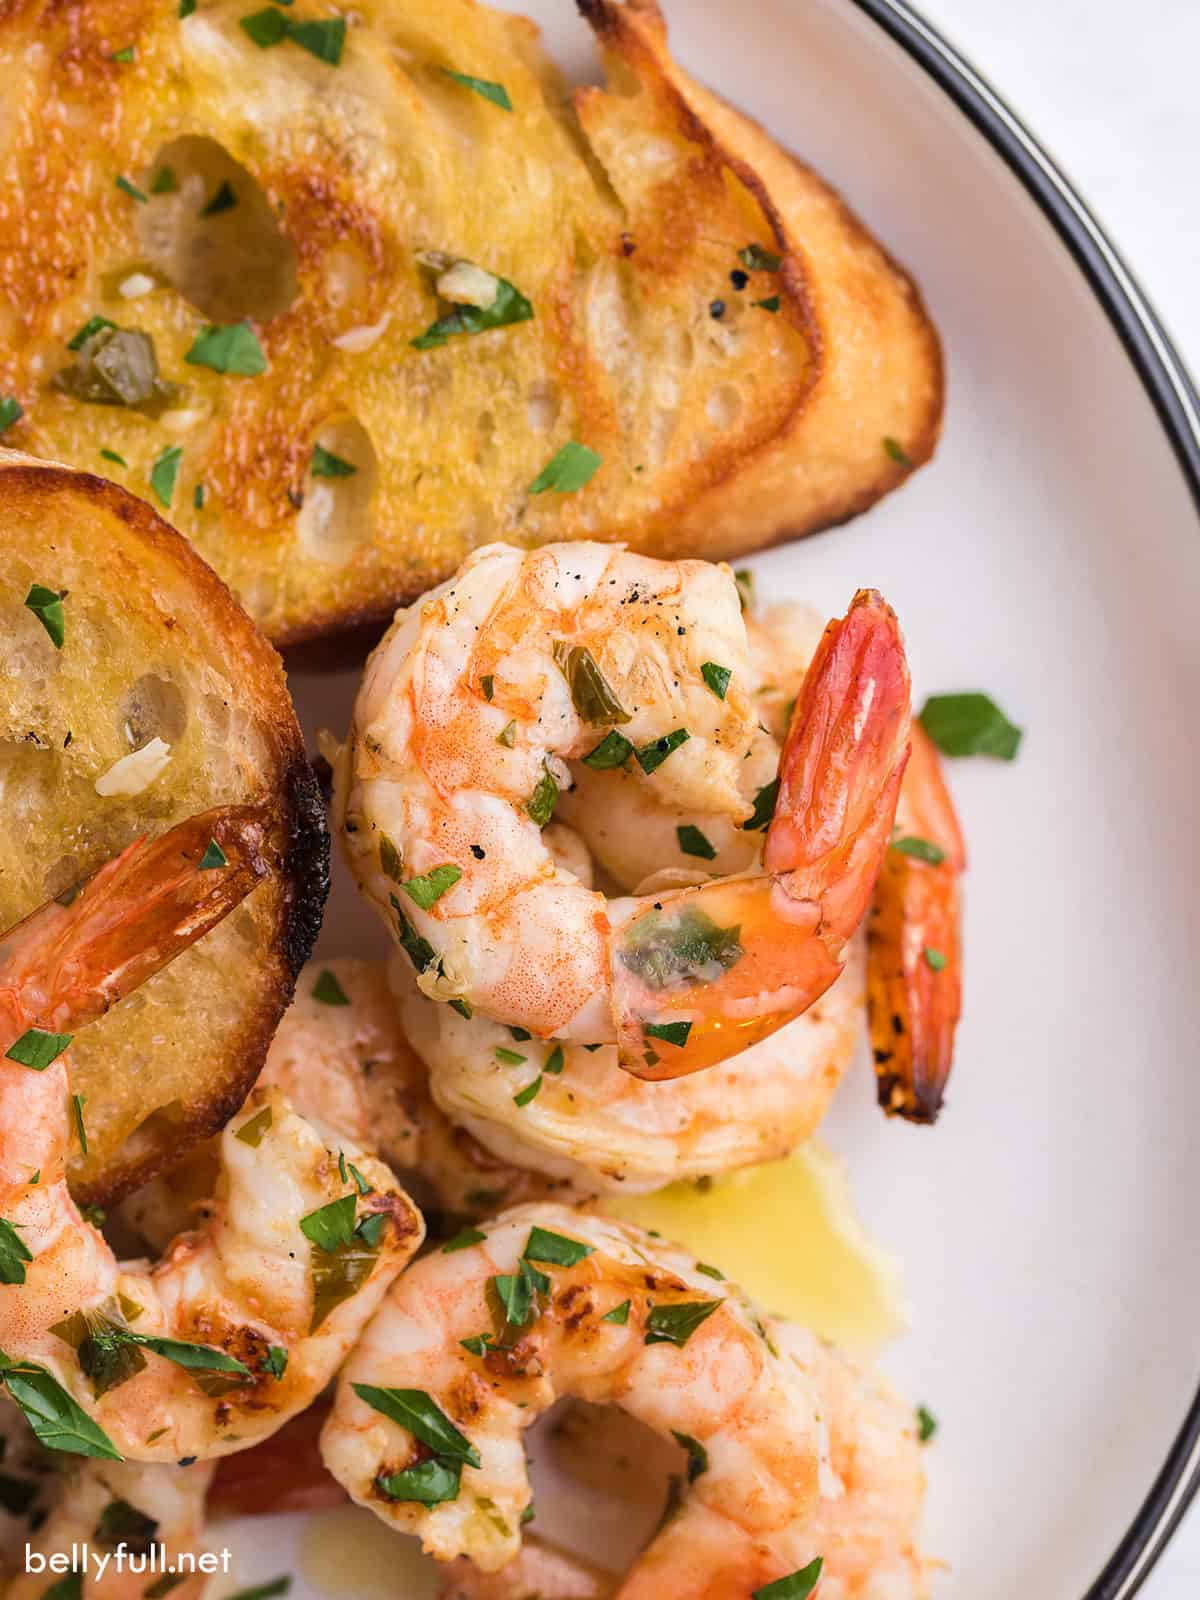 A close up of grilled shrimp scampi and baguette slices on a plate